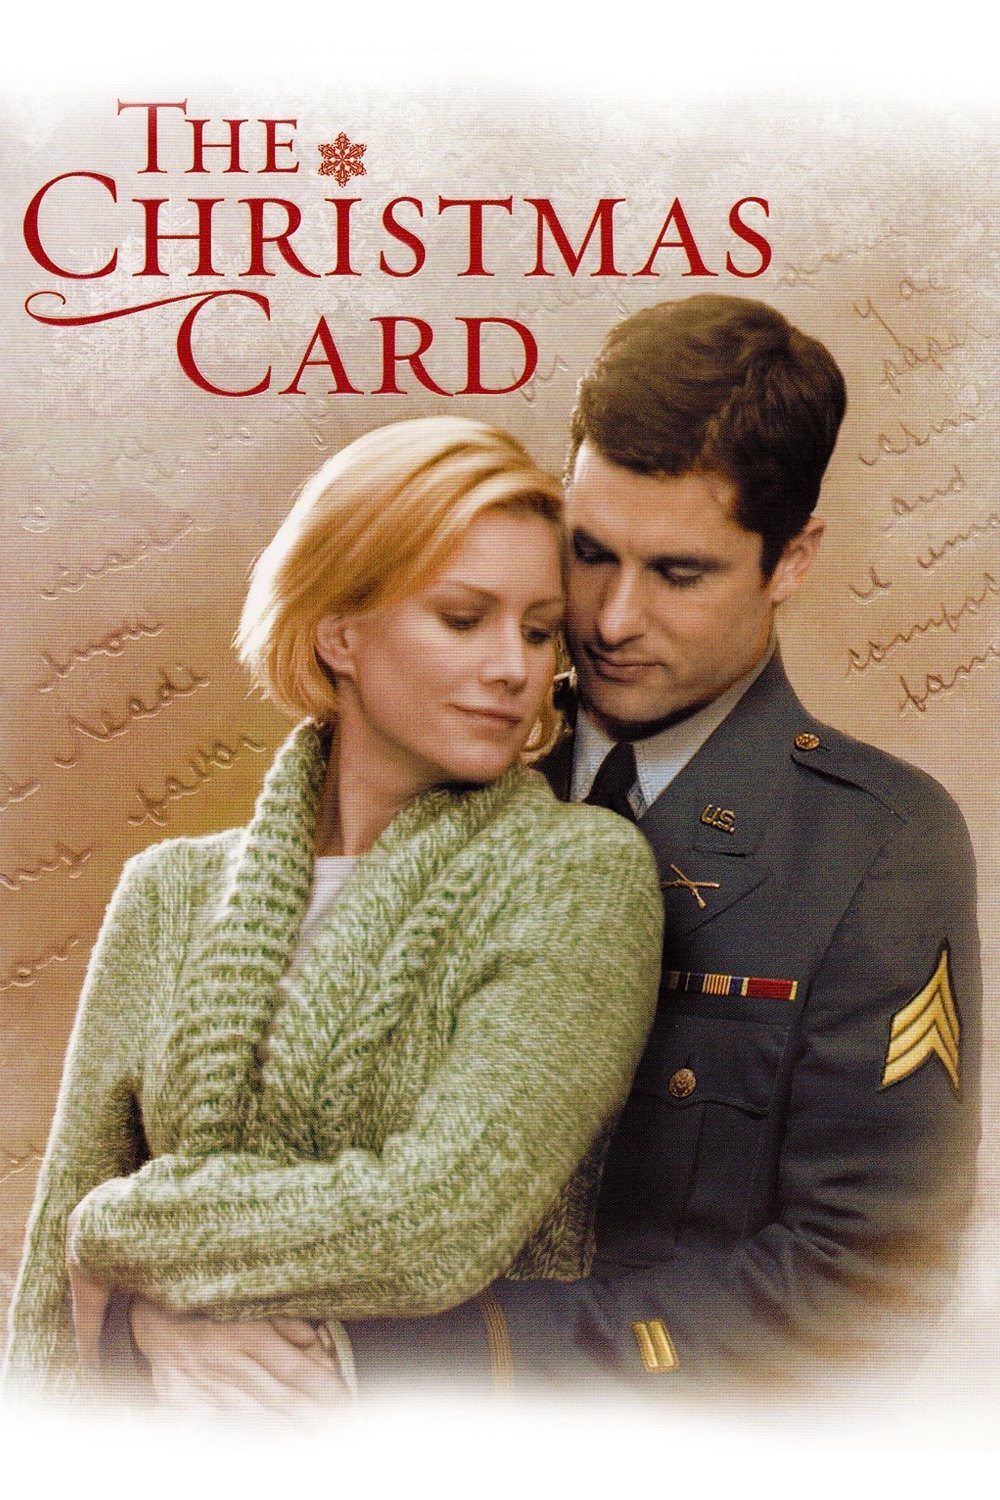 Watch The Christmas Card 2006 Free Online